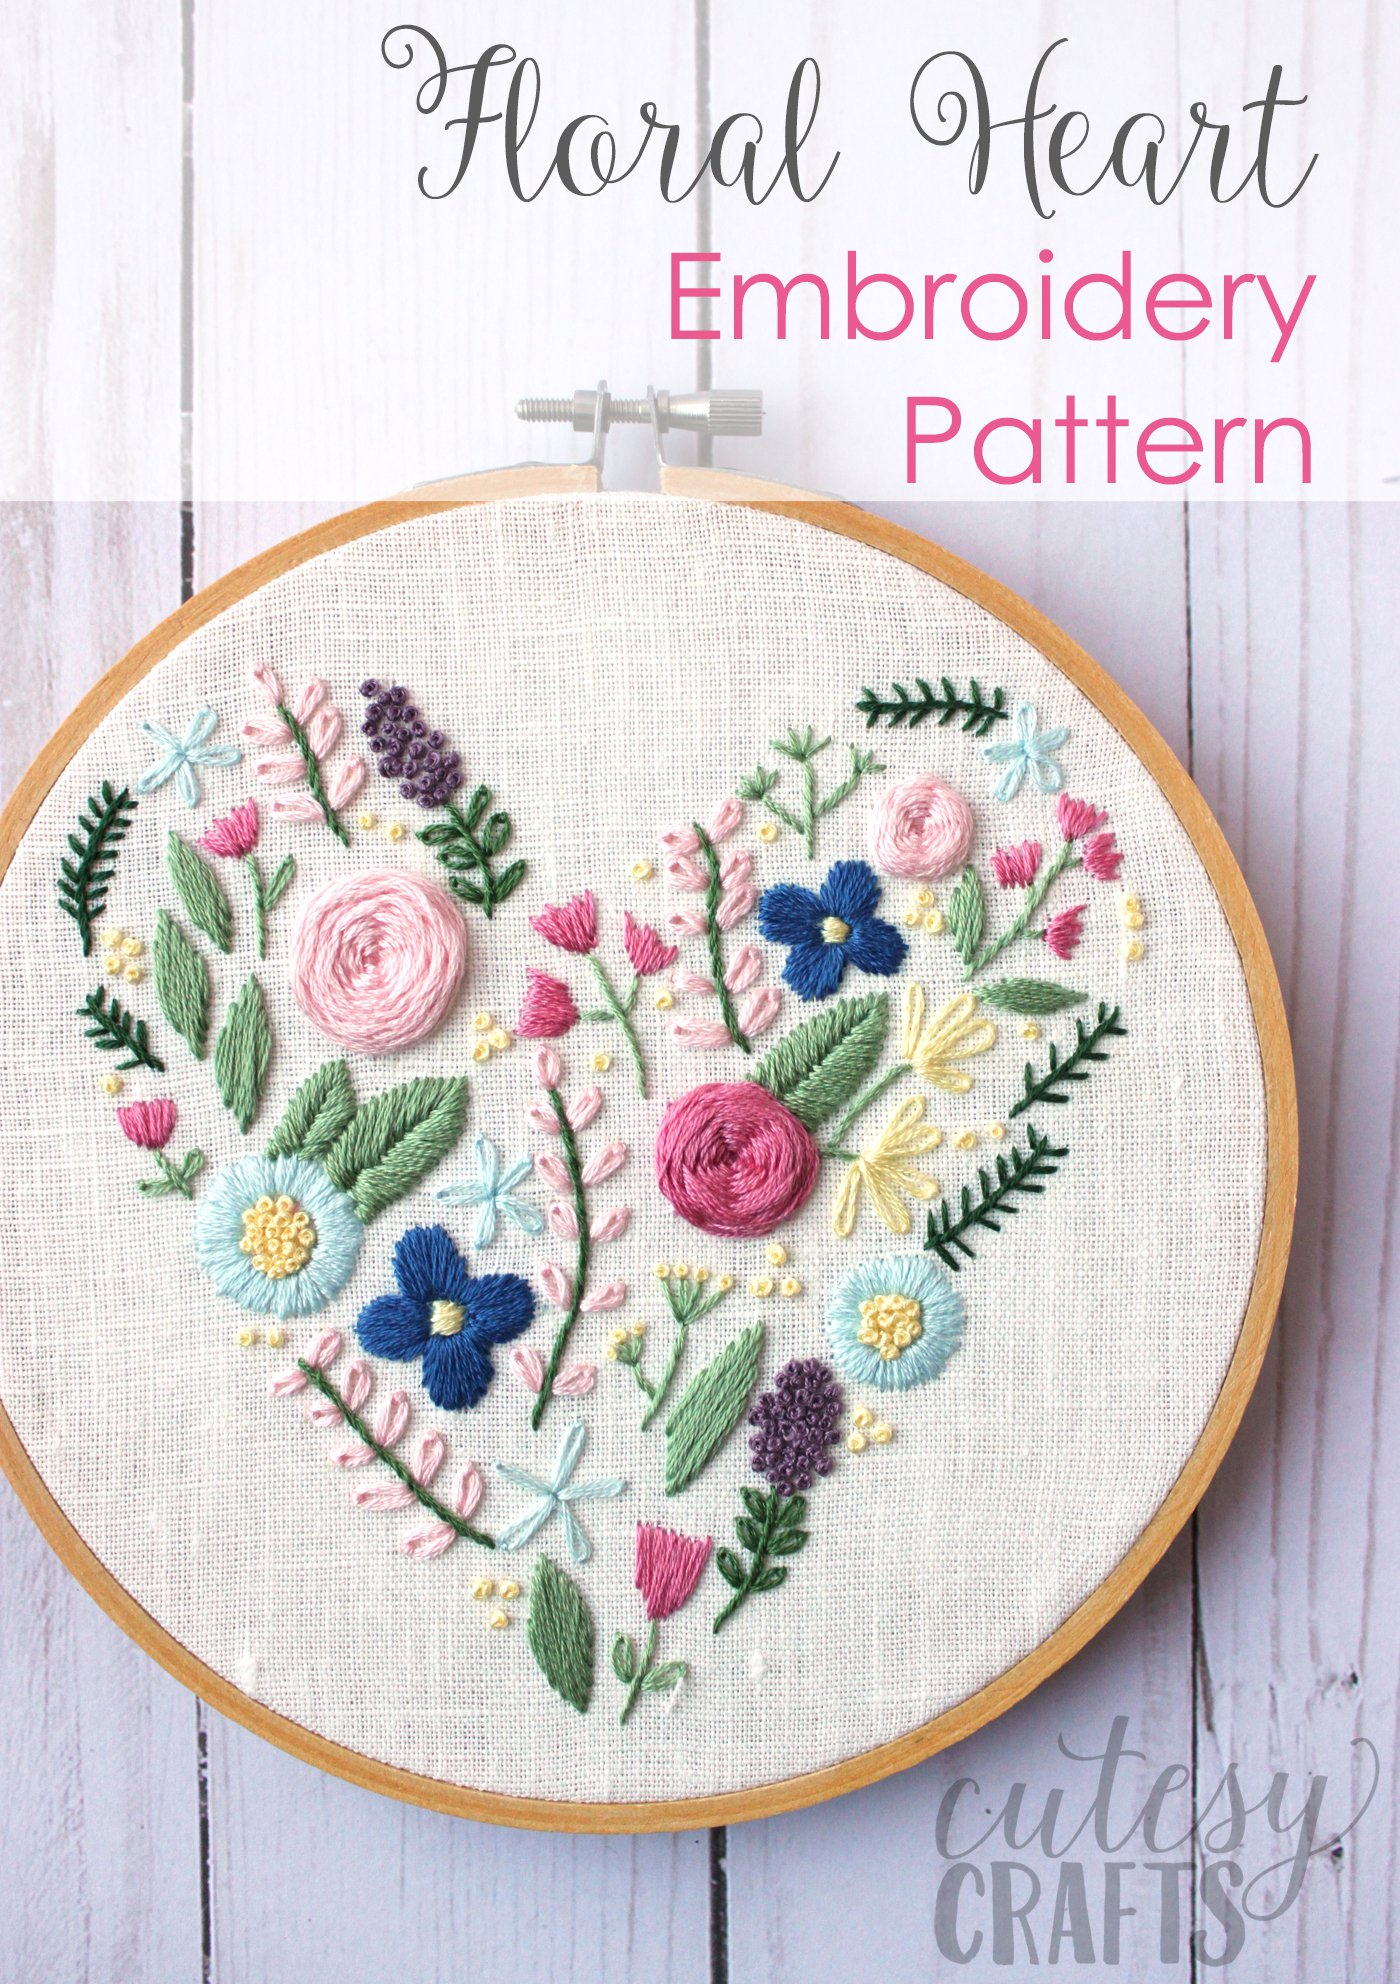 Free Flower Embroidery Patterns Floral Heart Hand Embroidery Pattern The Polka Dot Chair